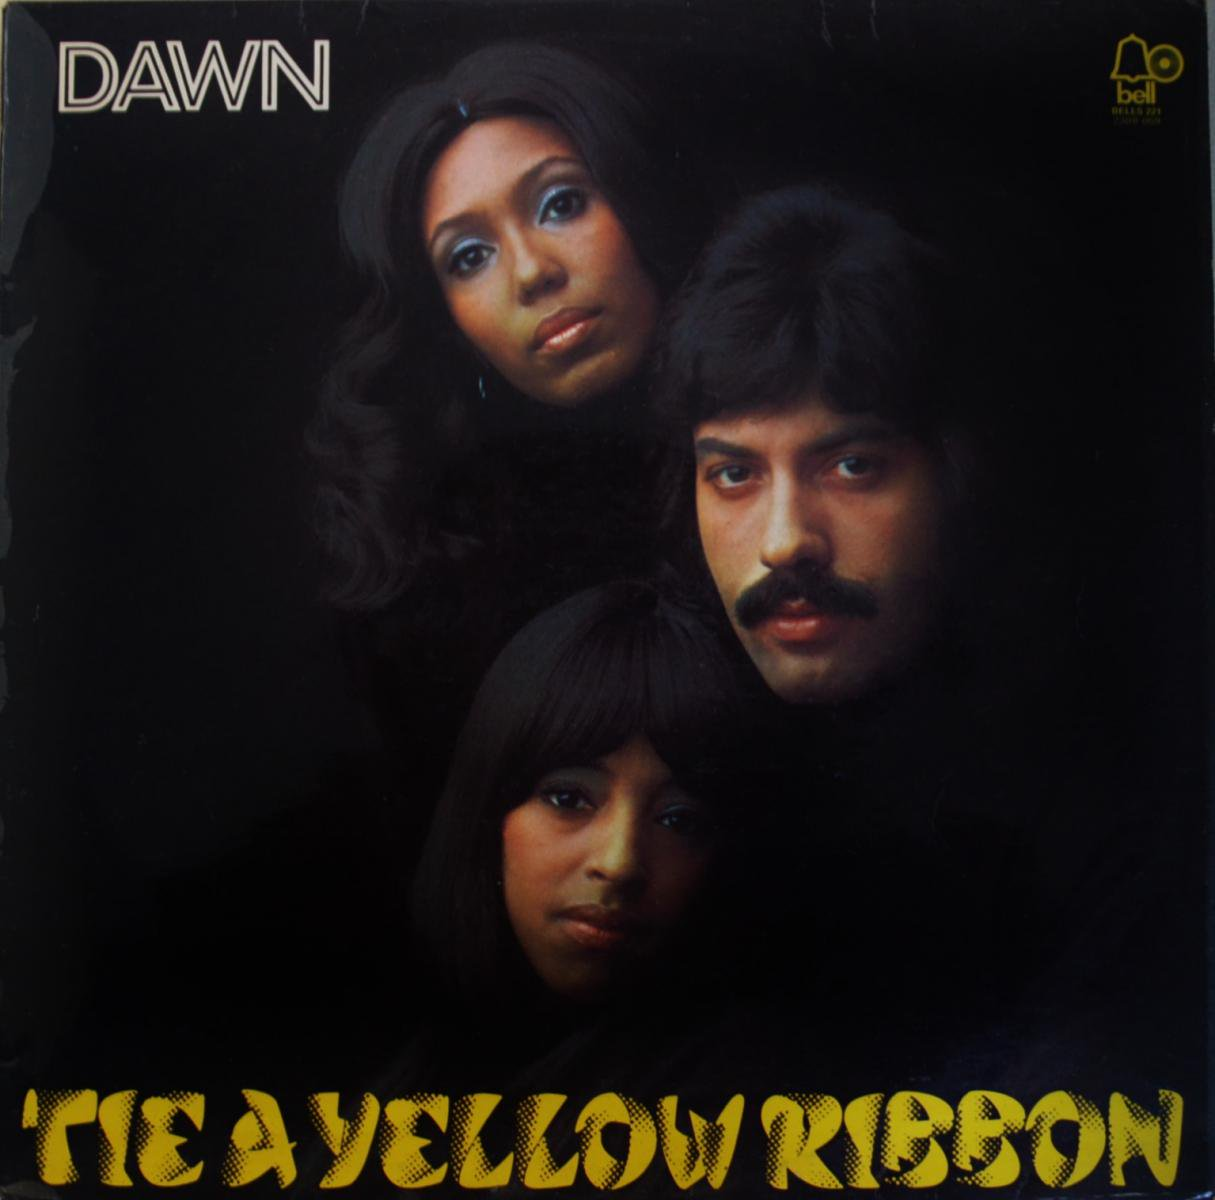 DAWN / TIE A YELLOW RIBBON-UK (LP)